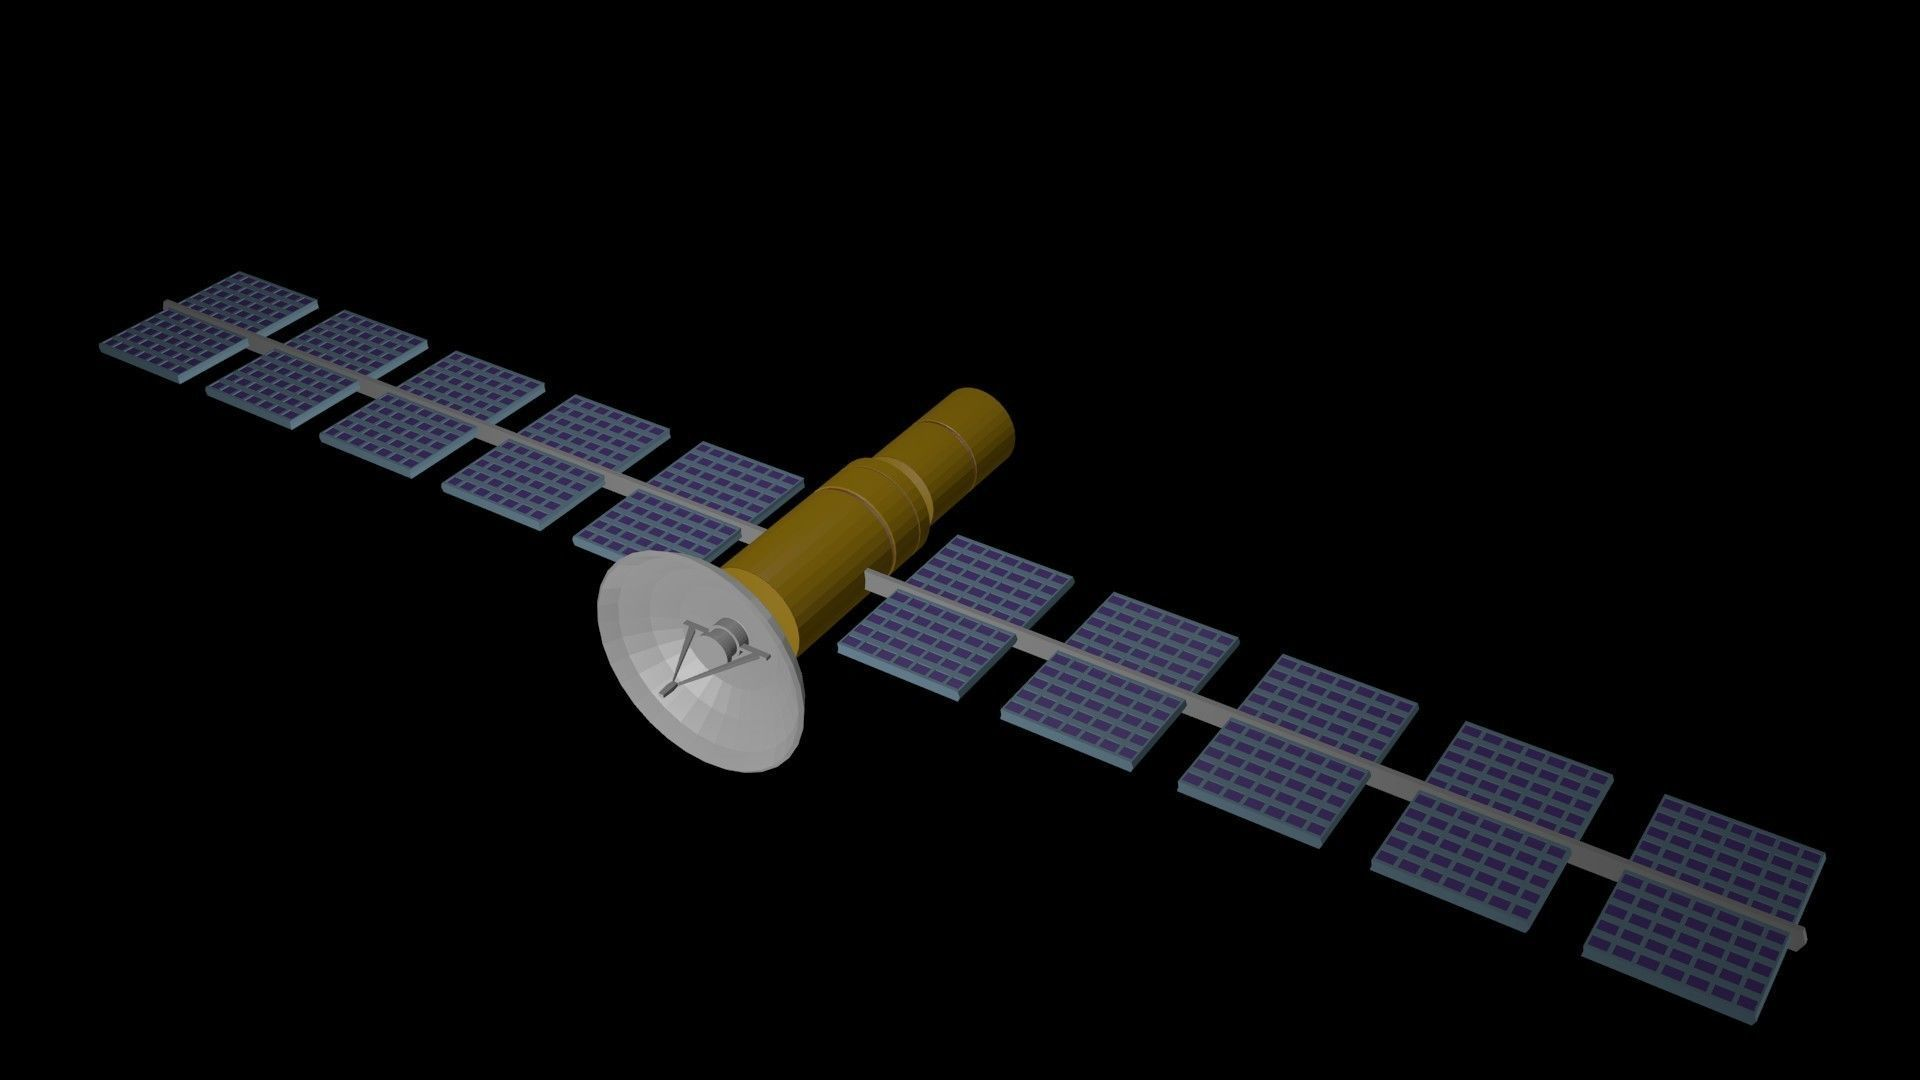 Low poly satellite 4